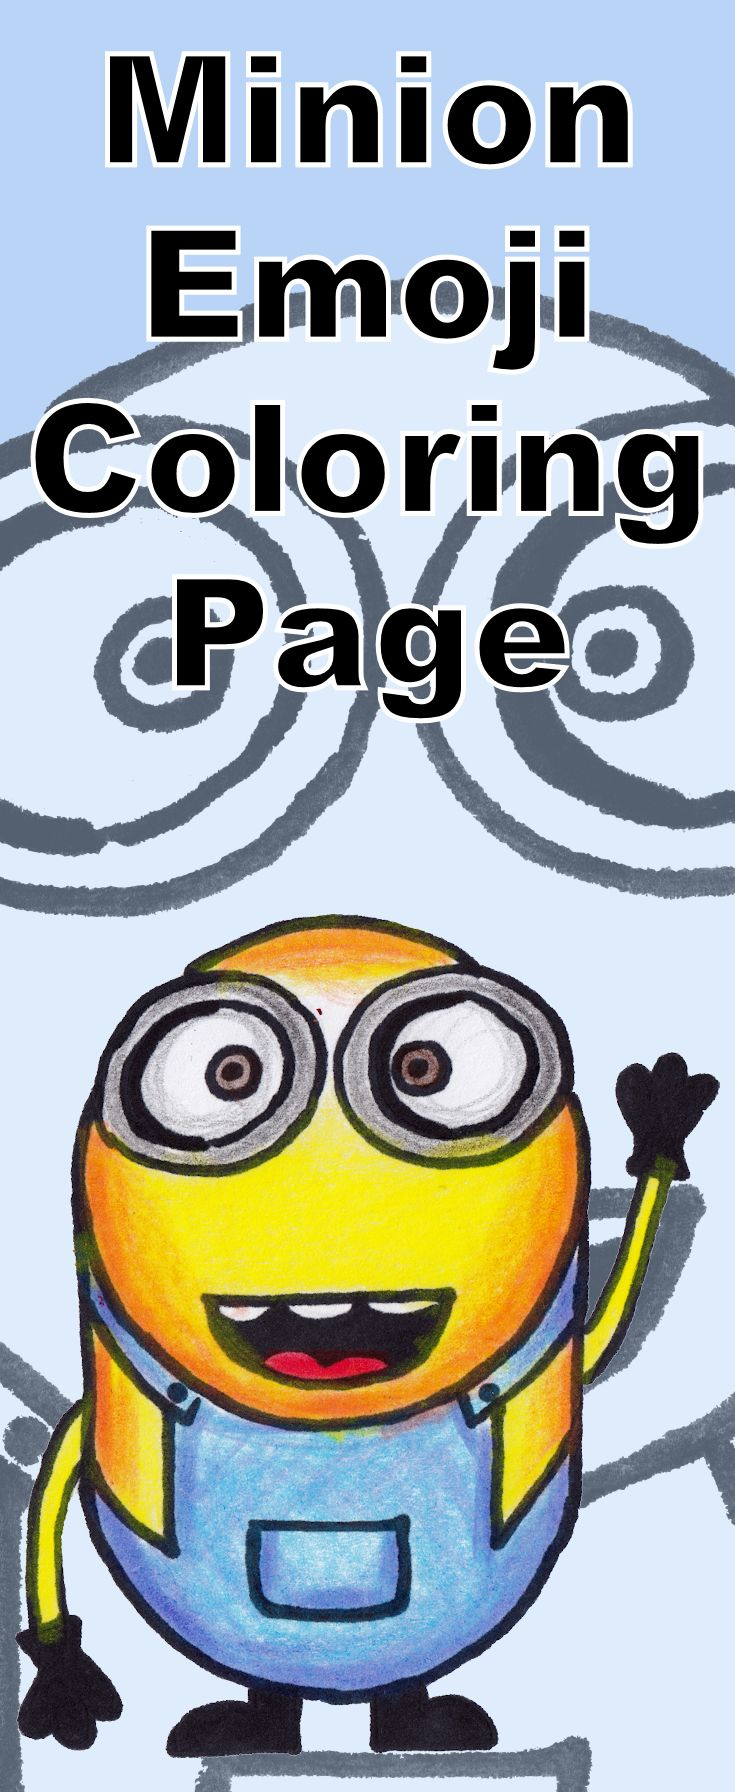 Emoji coloring pages getcoloringpages com - Free Minion Emoji Coloring Page Includes A Drawing Tutorial Video